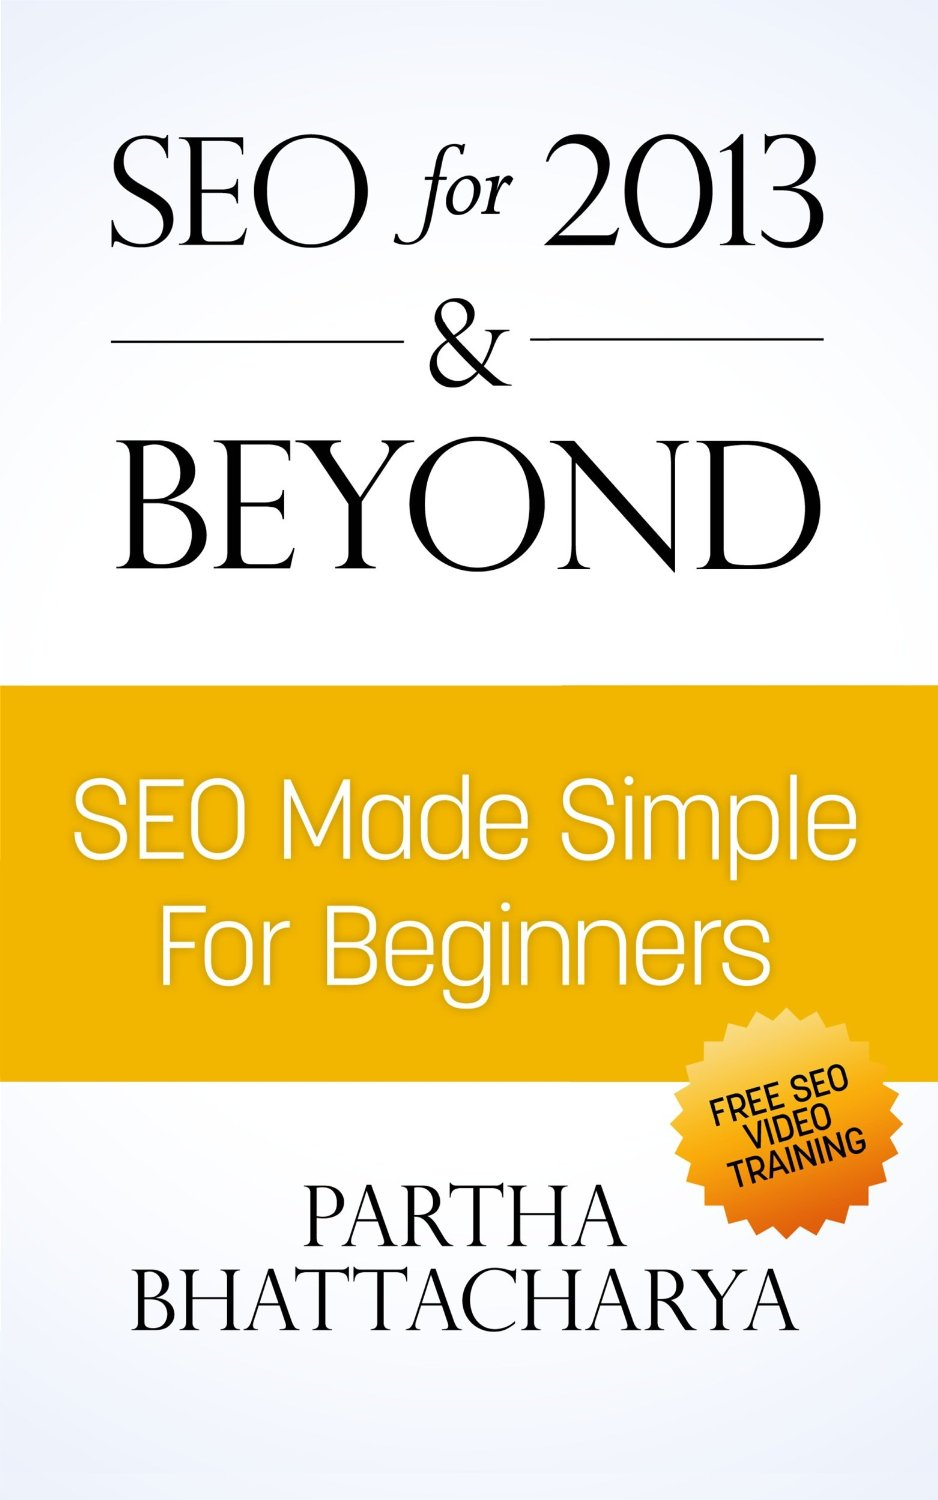 SEO For 2013 & Beyond: SEO Made Simple For Beginners free download